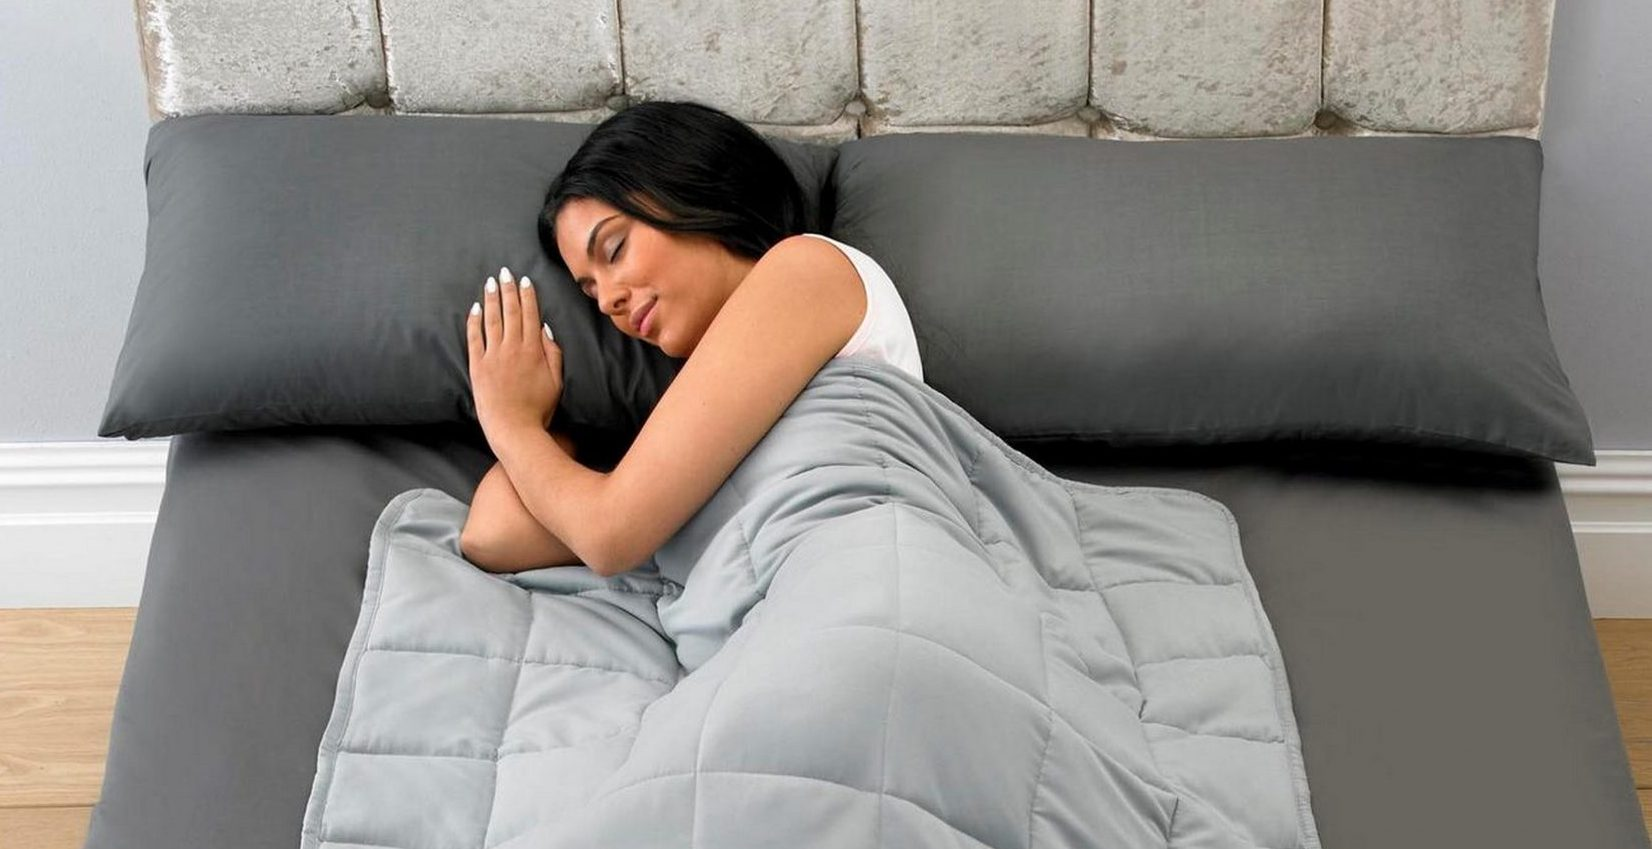 Coronavirus: Weighted blanket that helps to reduce anxiety and aid sleep on sale online